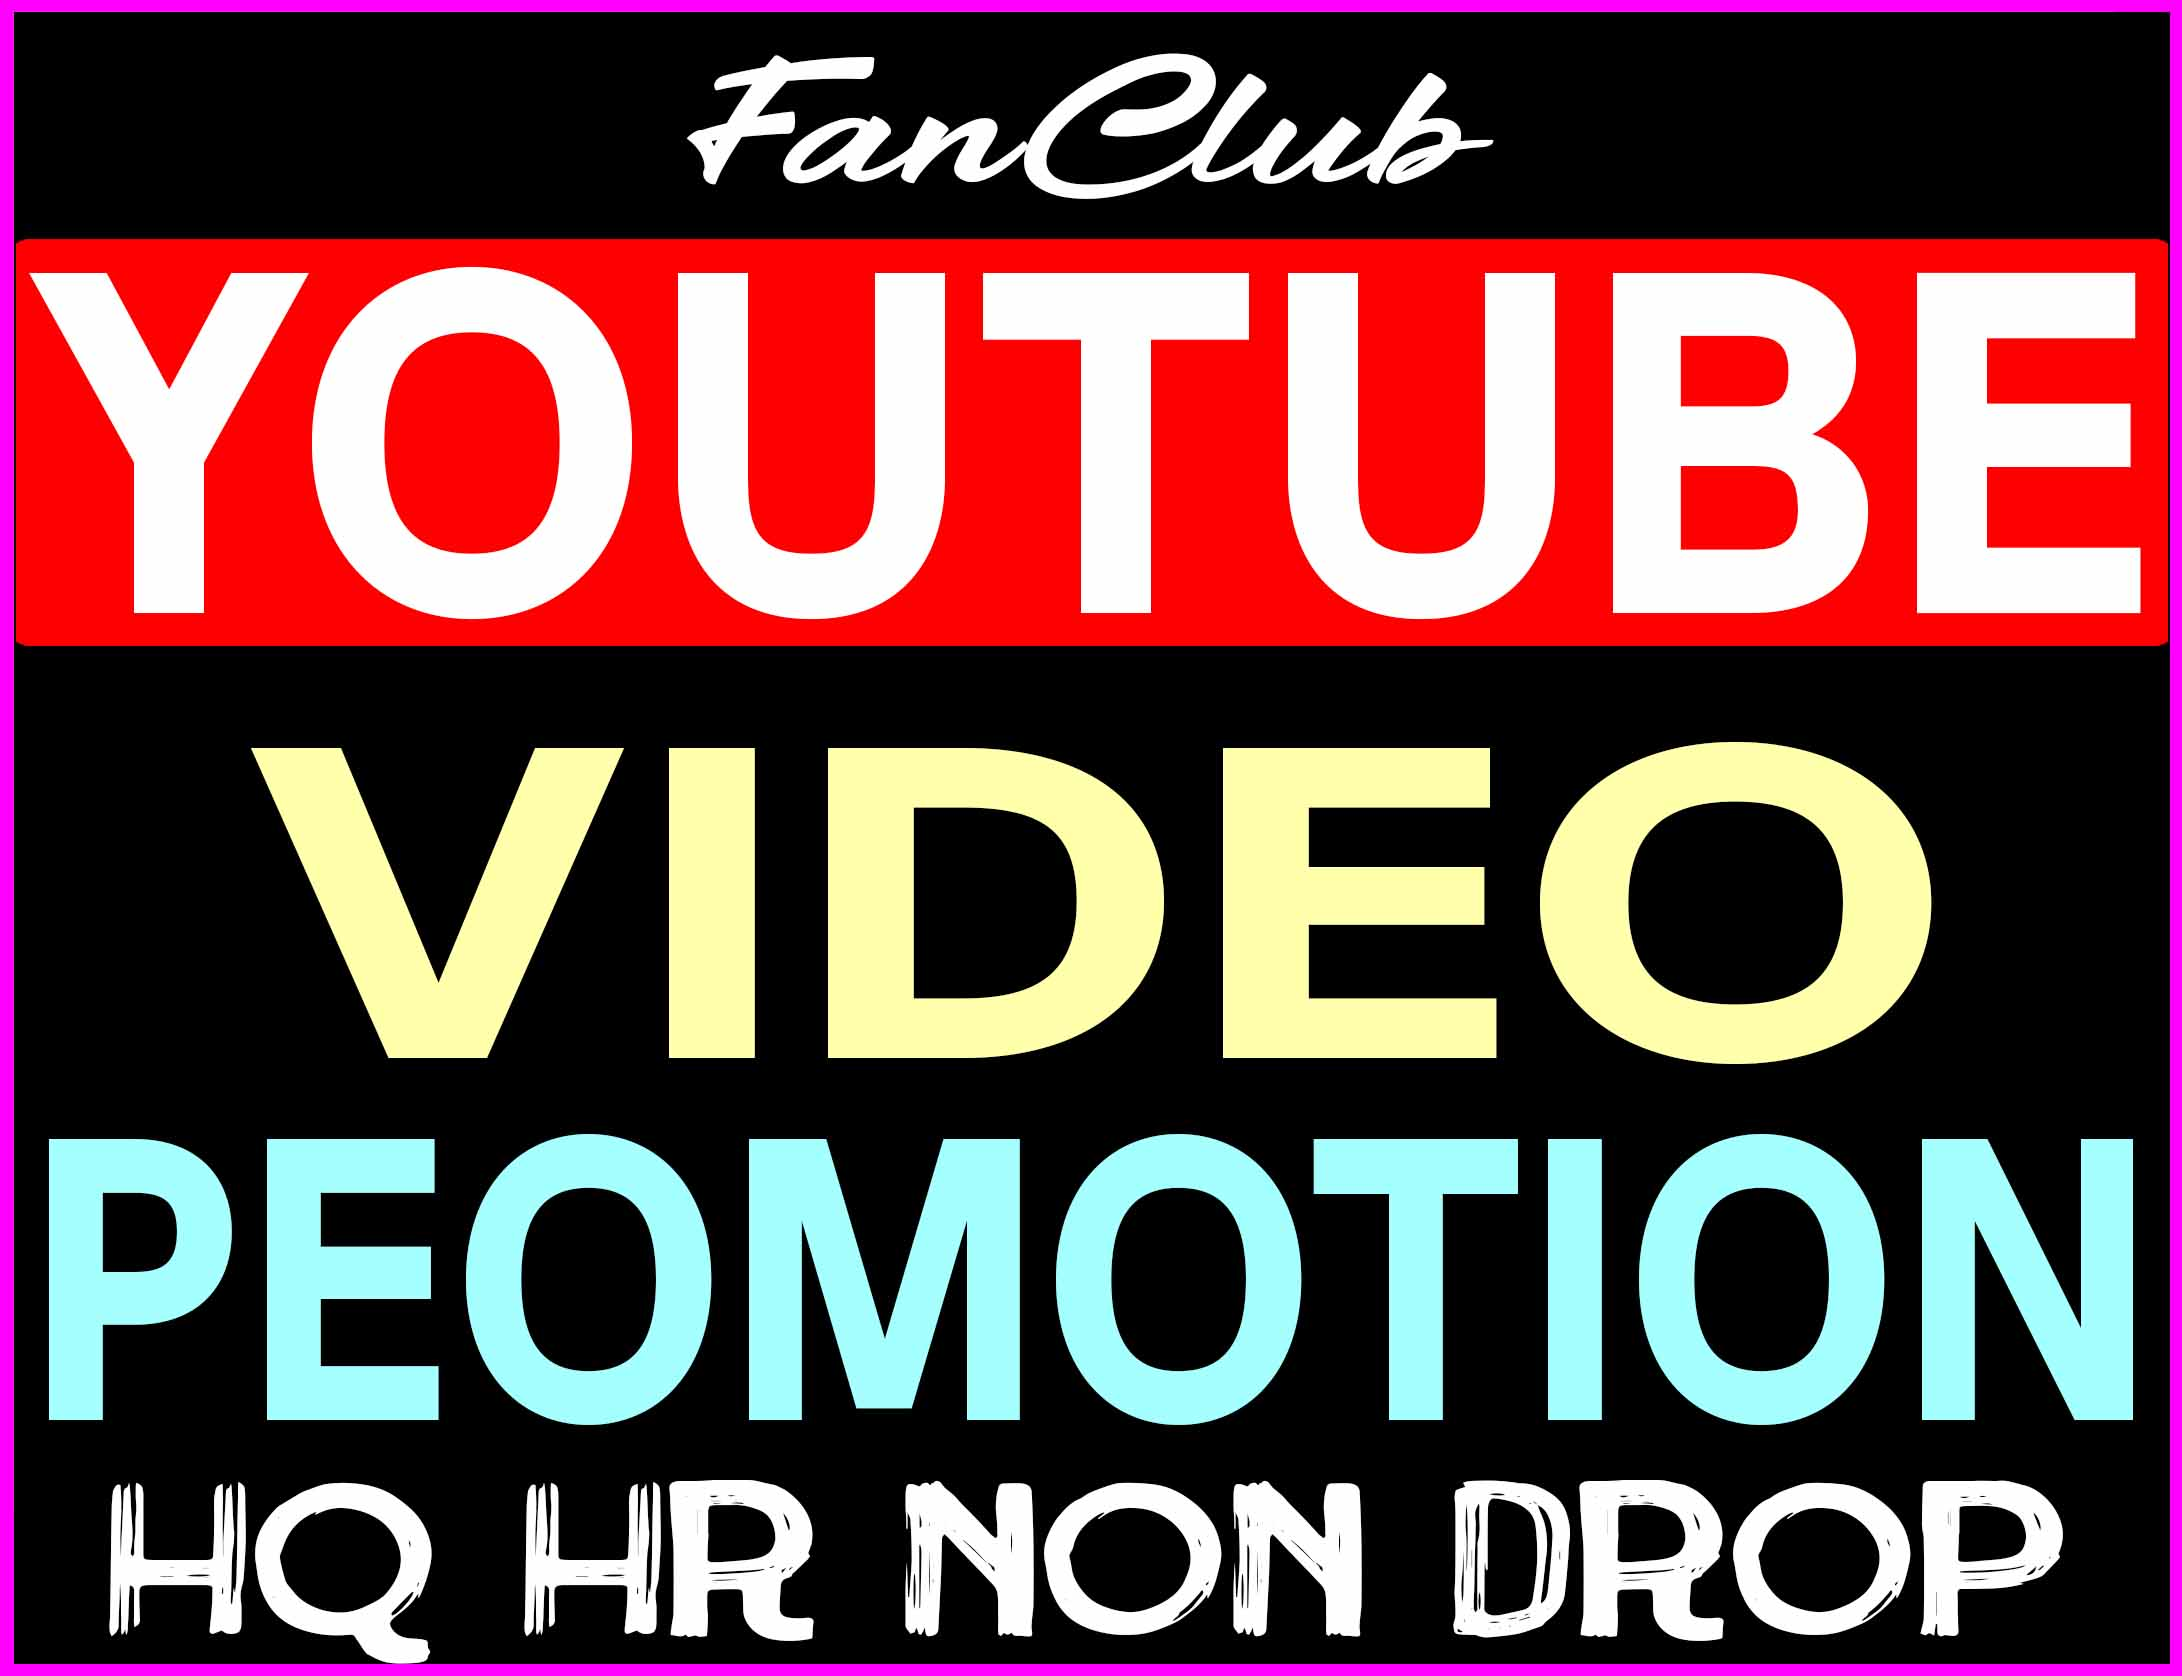 Quickly YouTube Video Promotion & Marketing Service